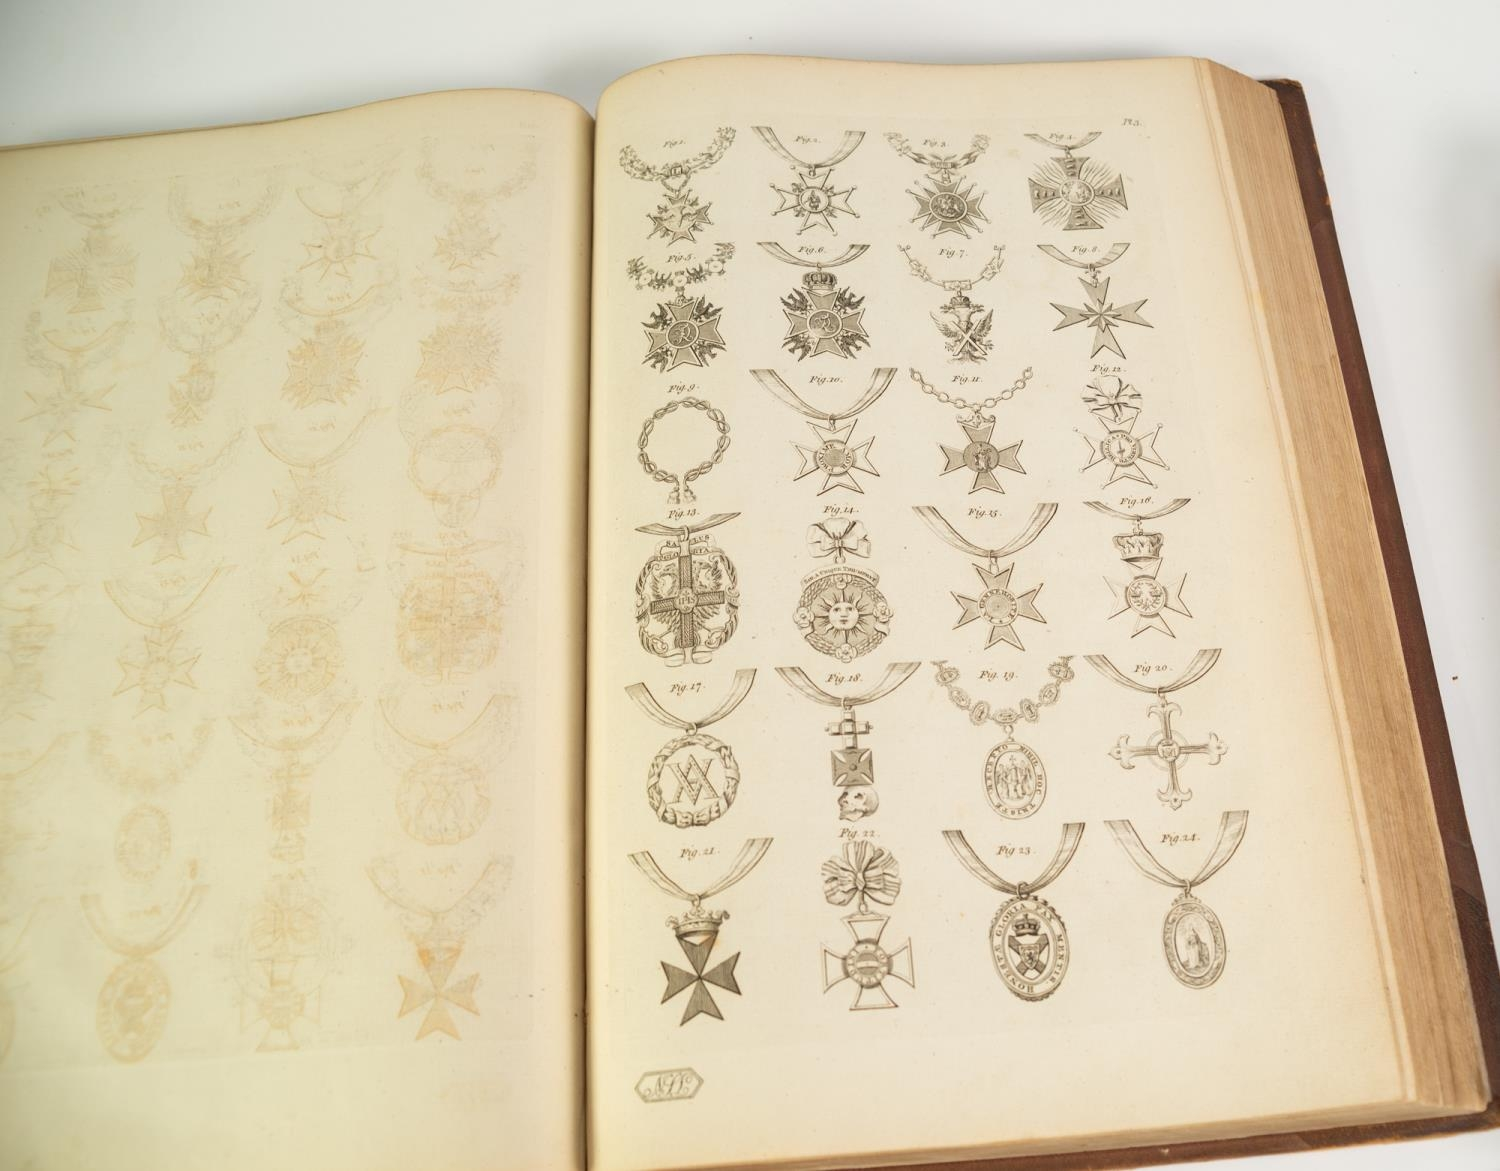 Joseph Edmondson- A Complete Body of Heraldry, 2 vol, folio, London, printed for the Author by T - Image 7 of 7